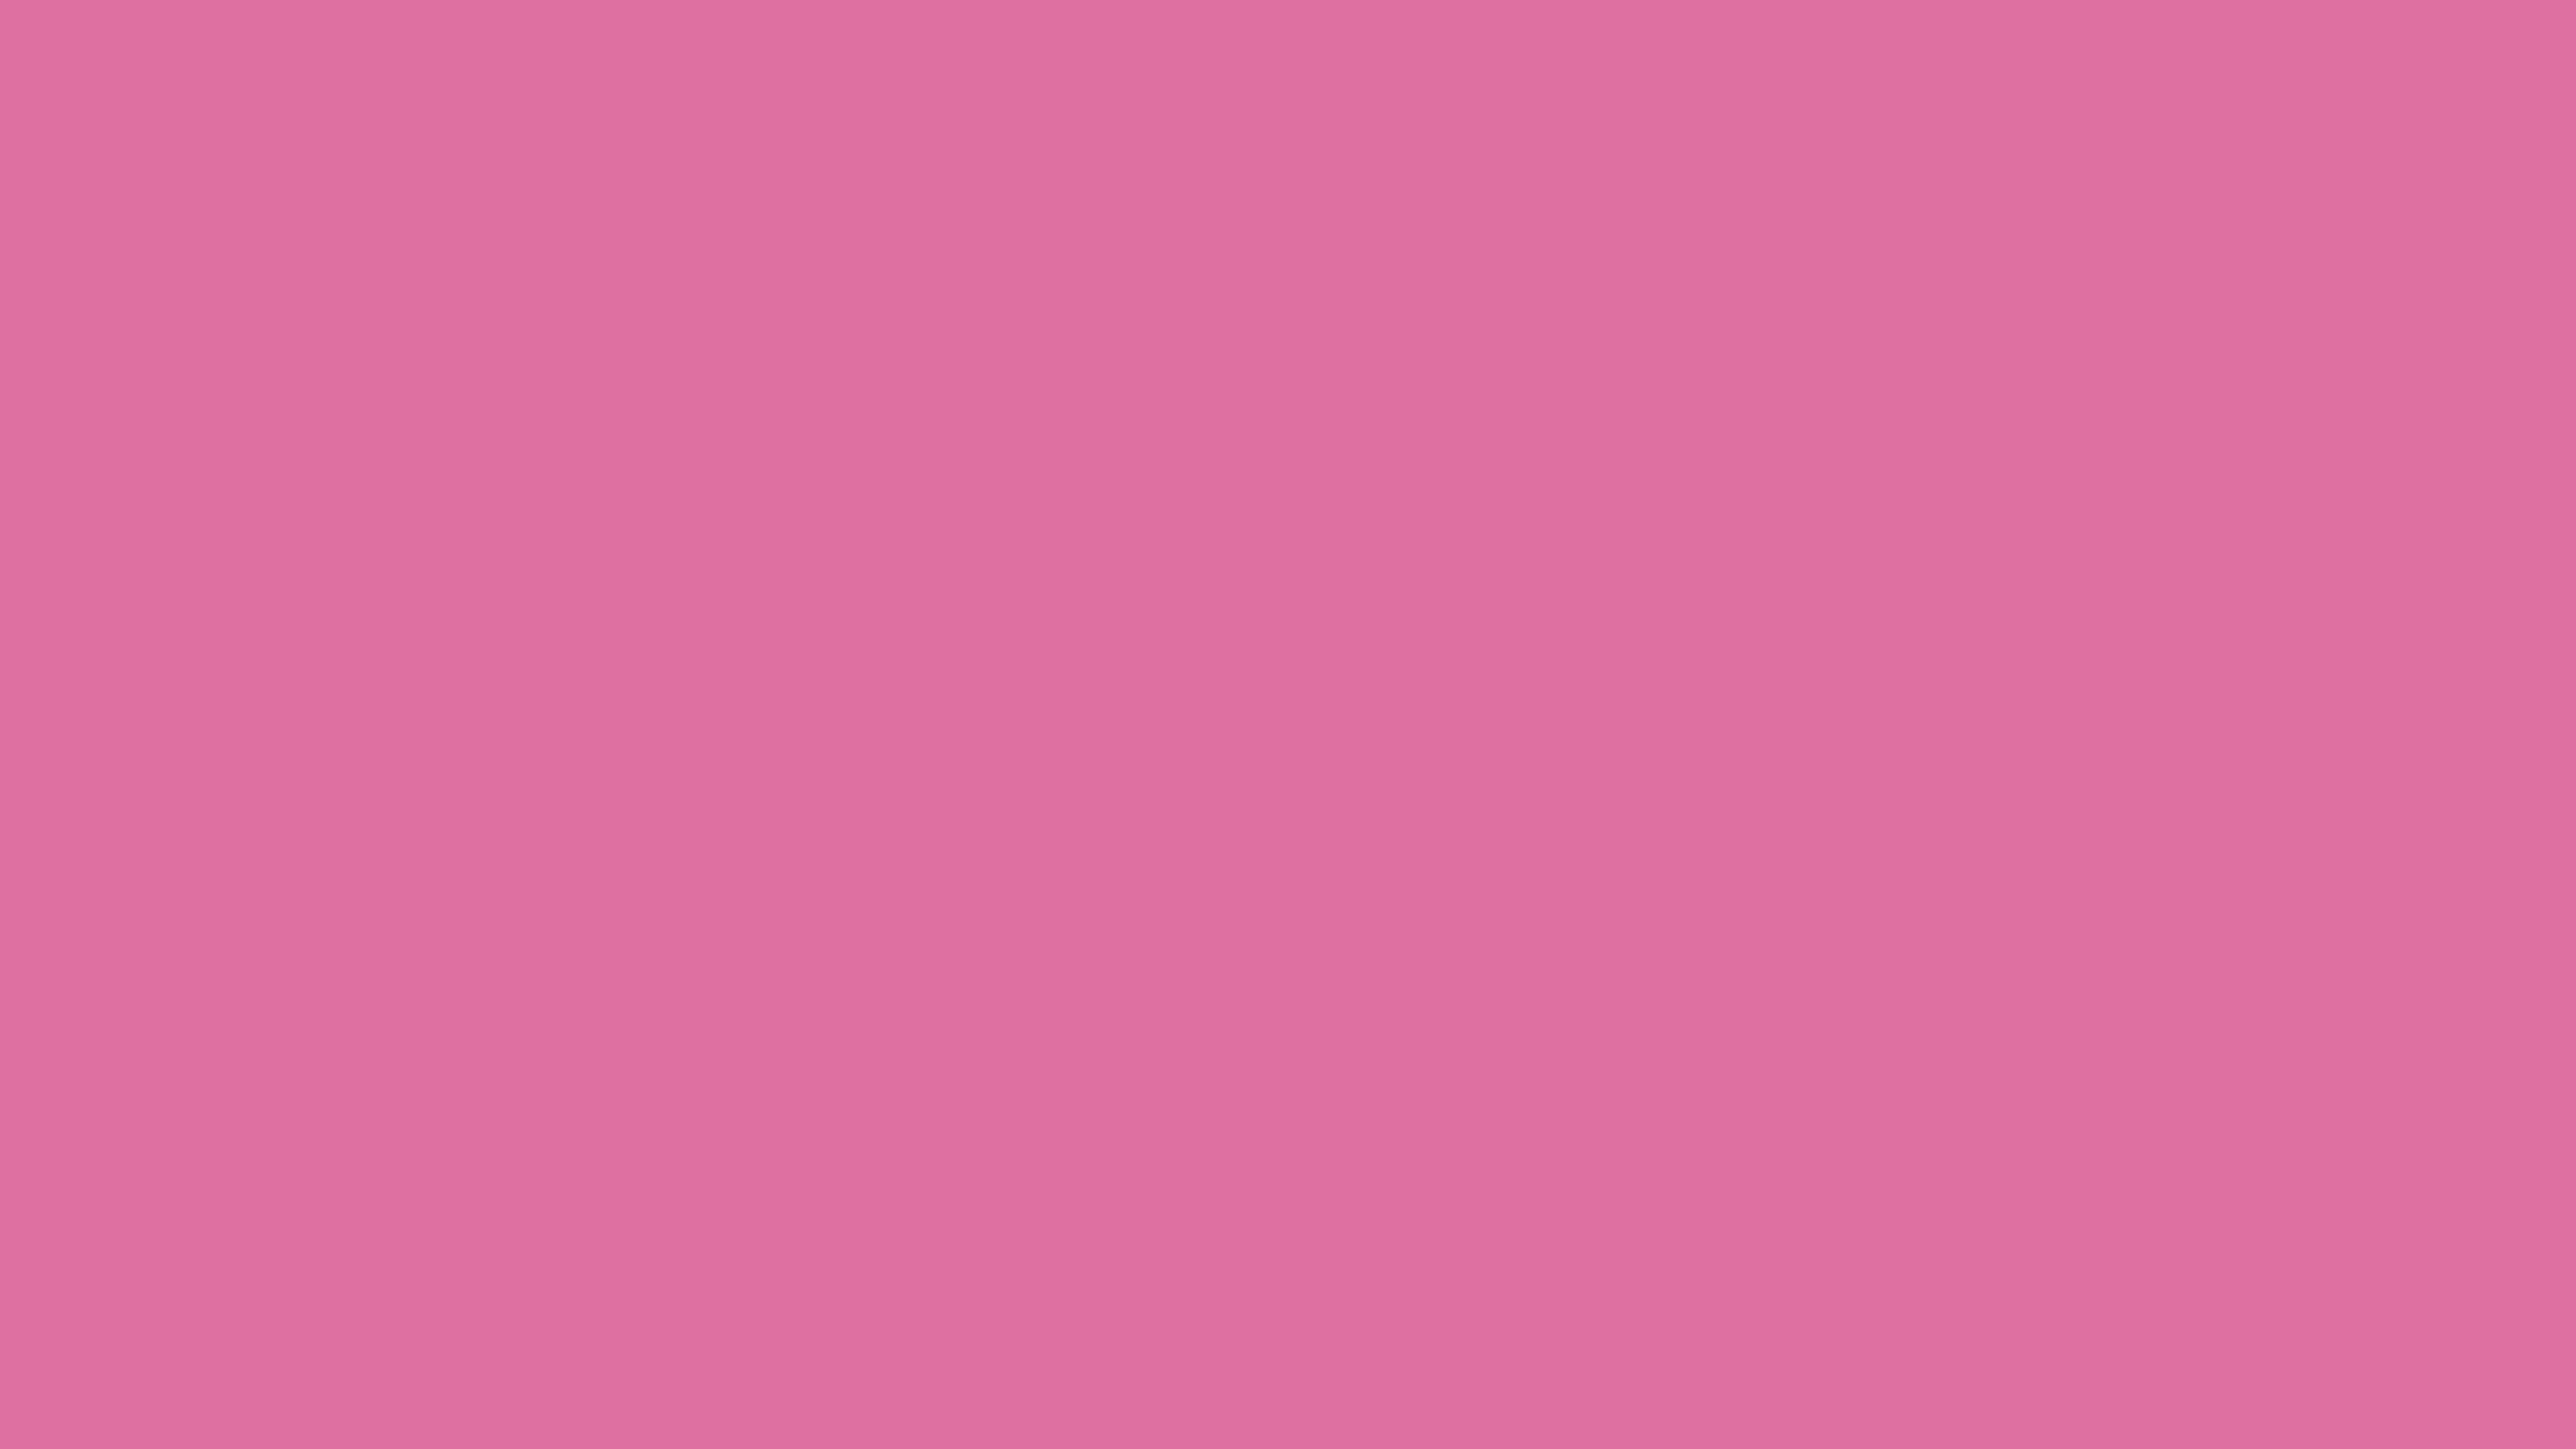 5120x2880 Thulian Pink Solid Color Background